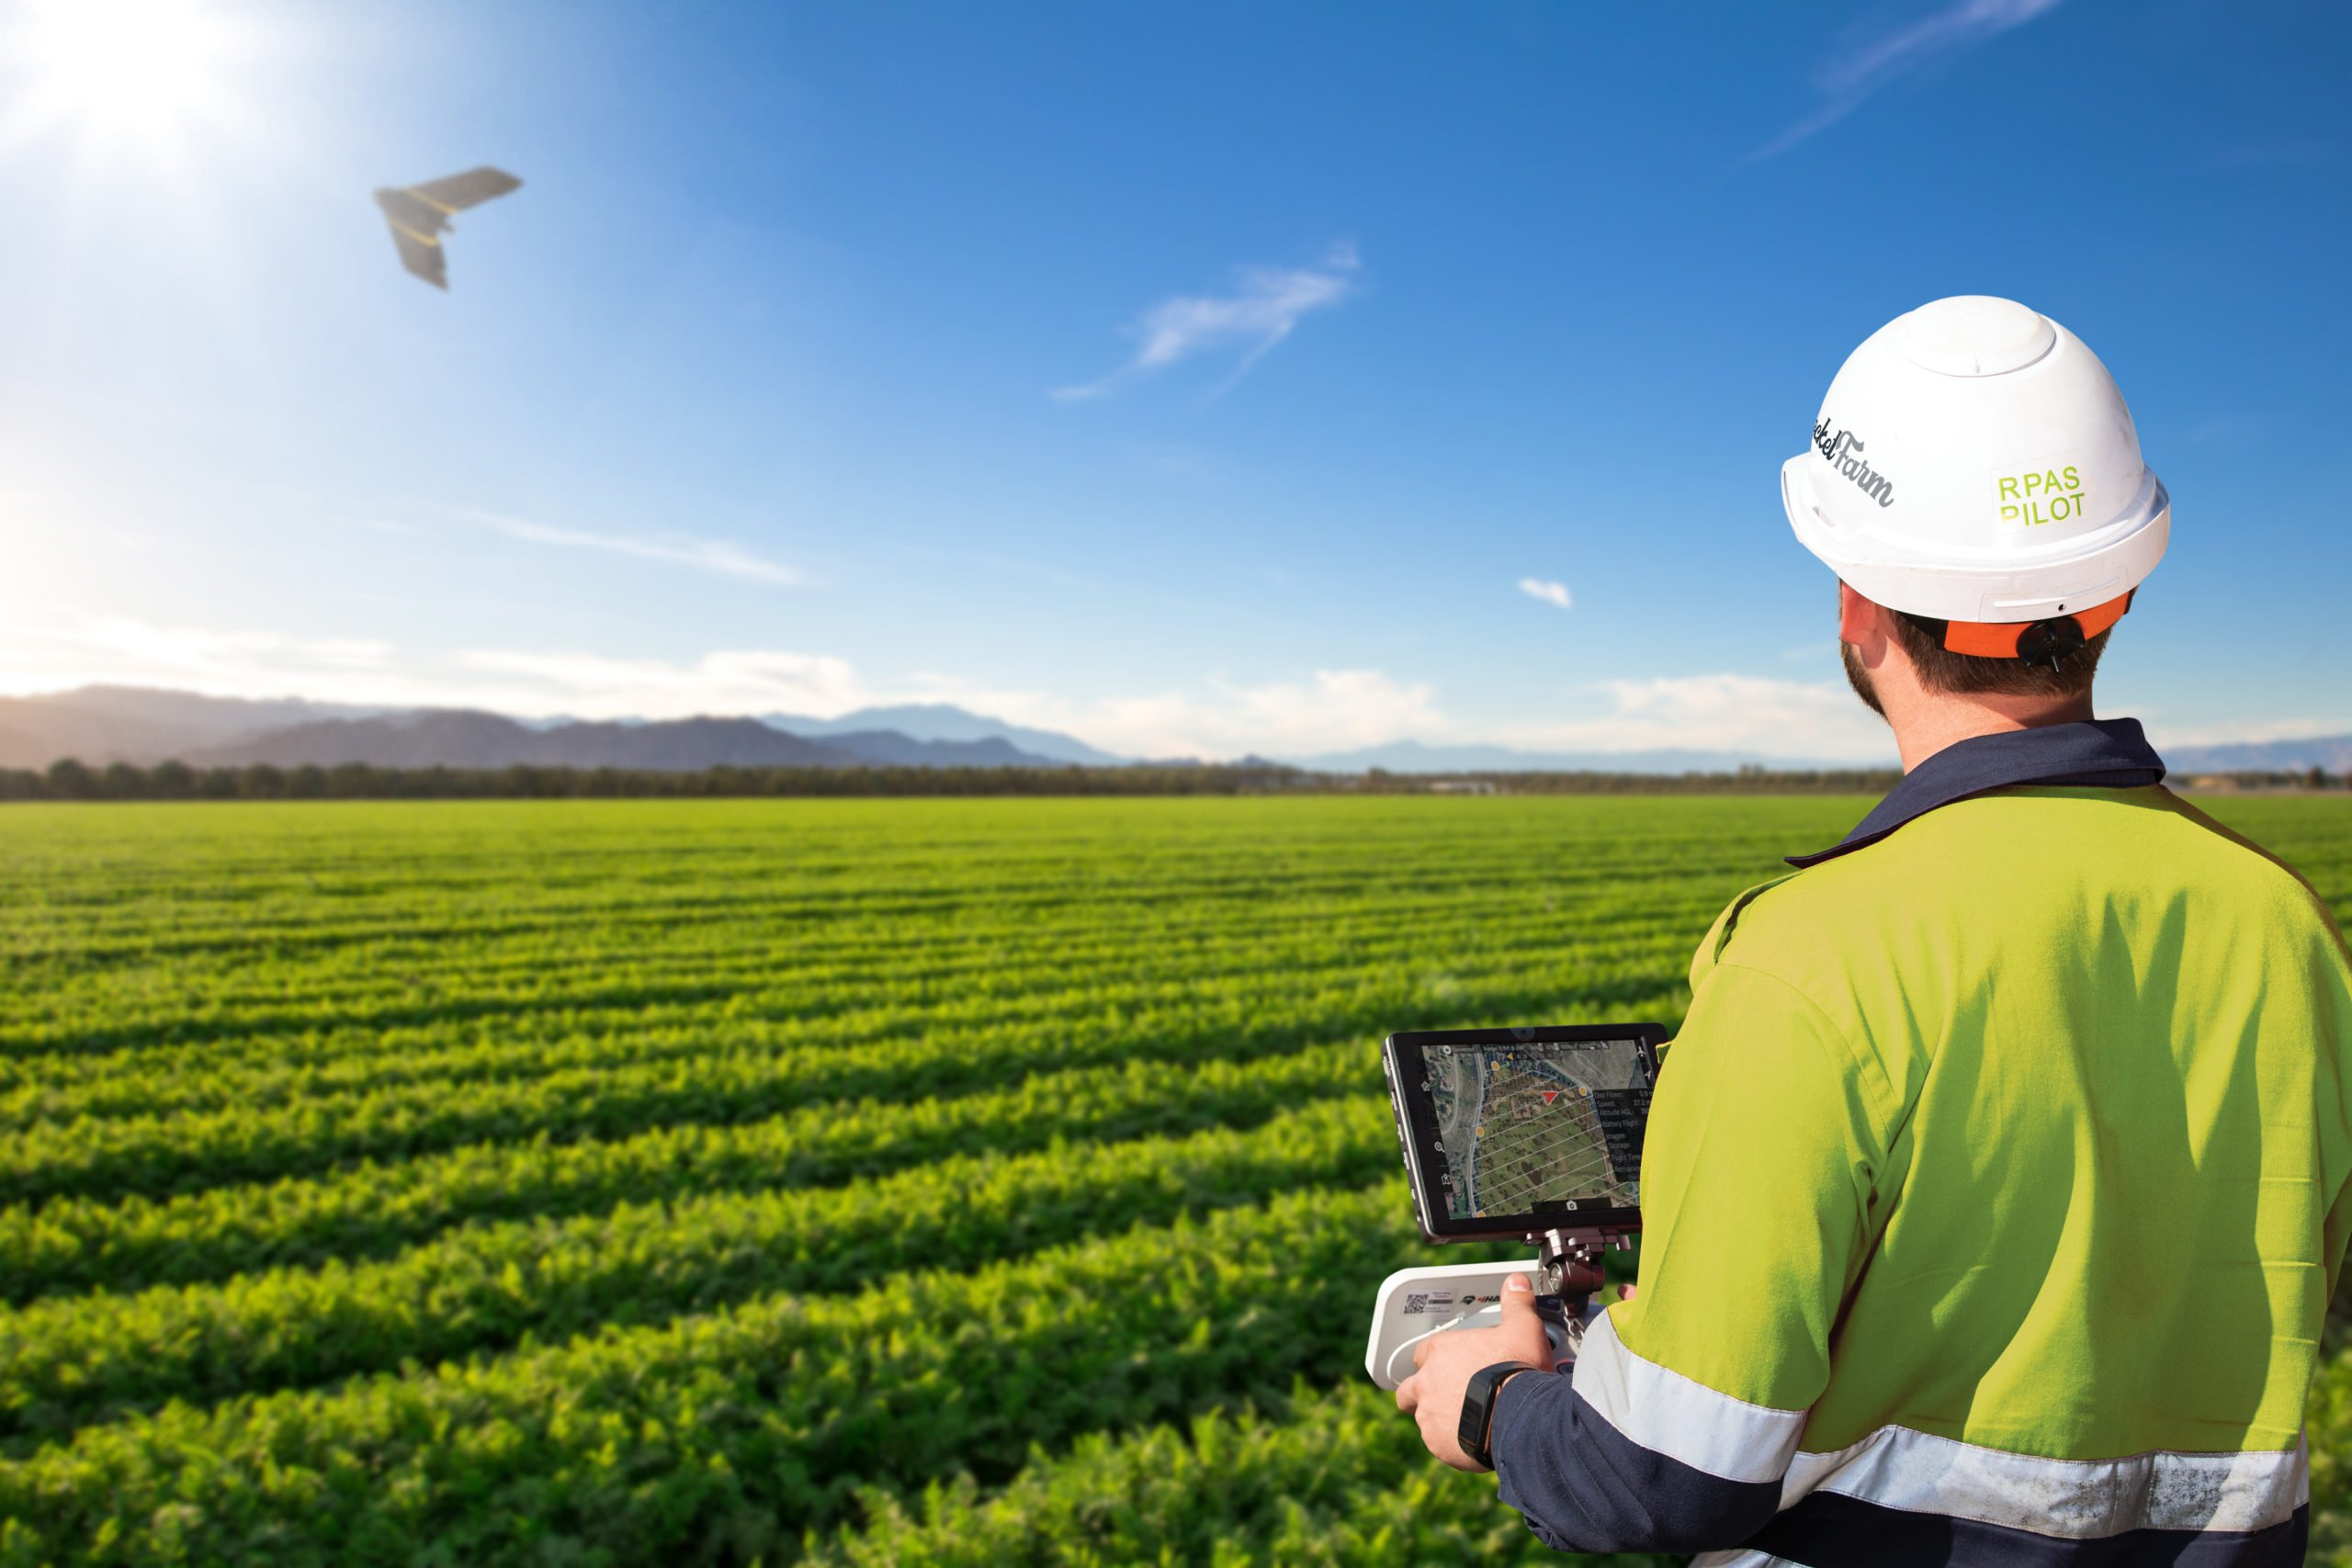 Delta Drone International (DLT)L signs agri-tech deal with Corteva - sUAS News - The Business of Drones